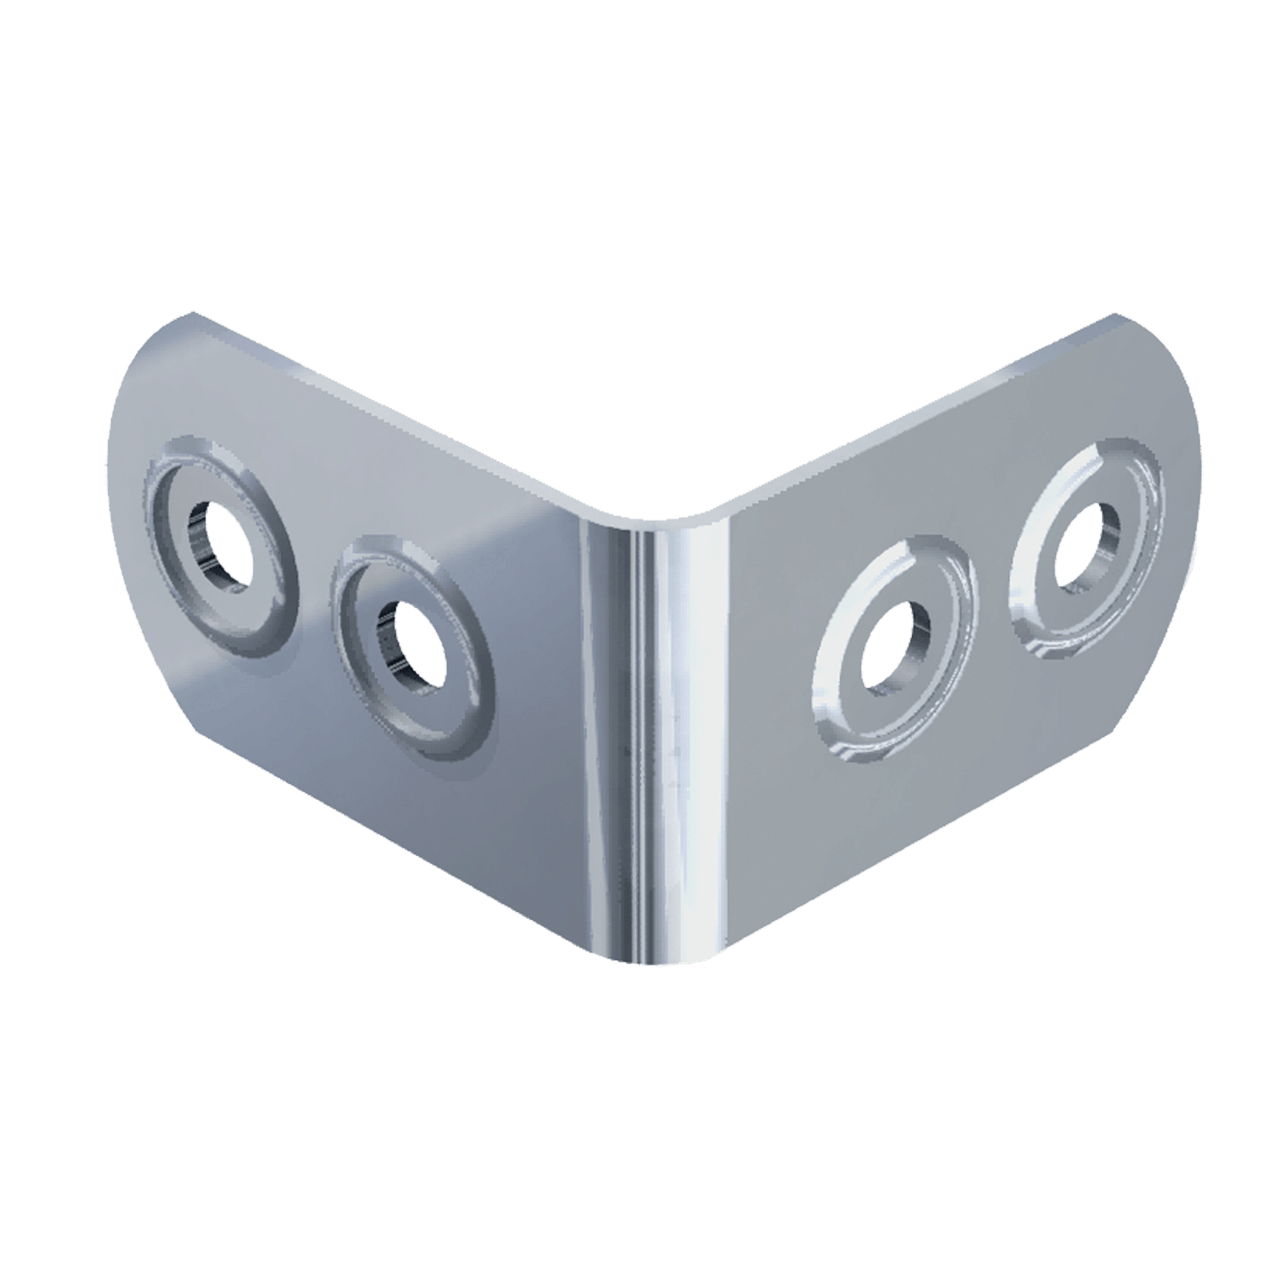 Small Four-Hole Clamp With Rivet Protectors, 3/4 view